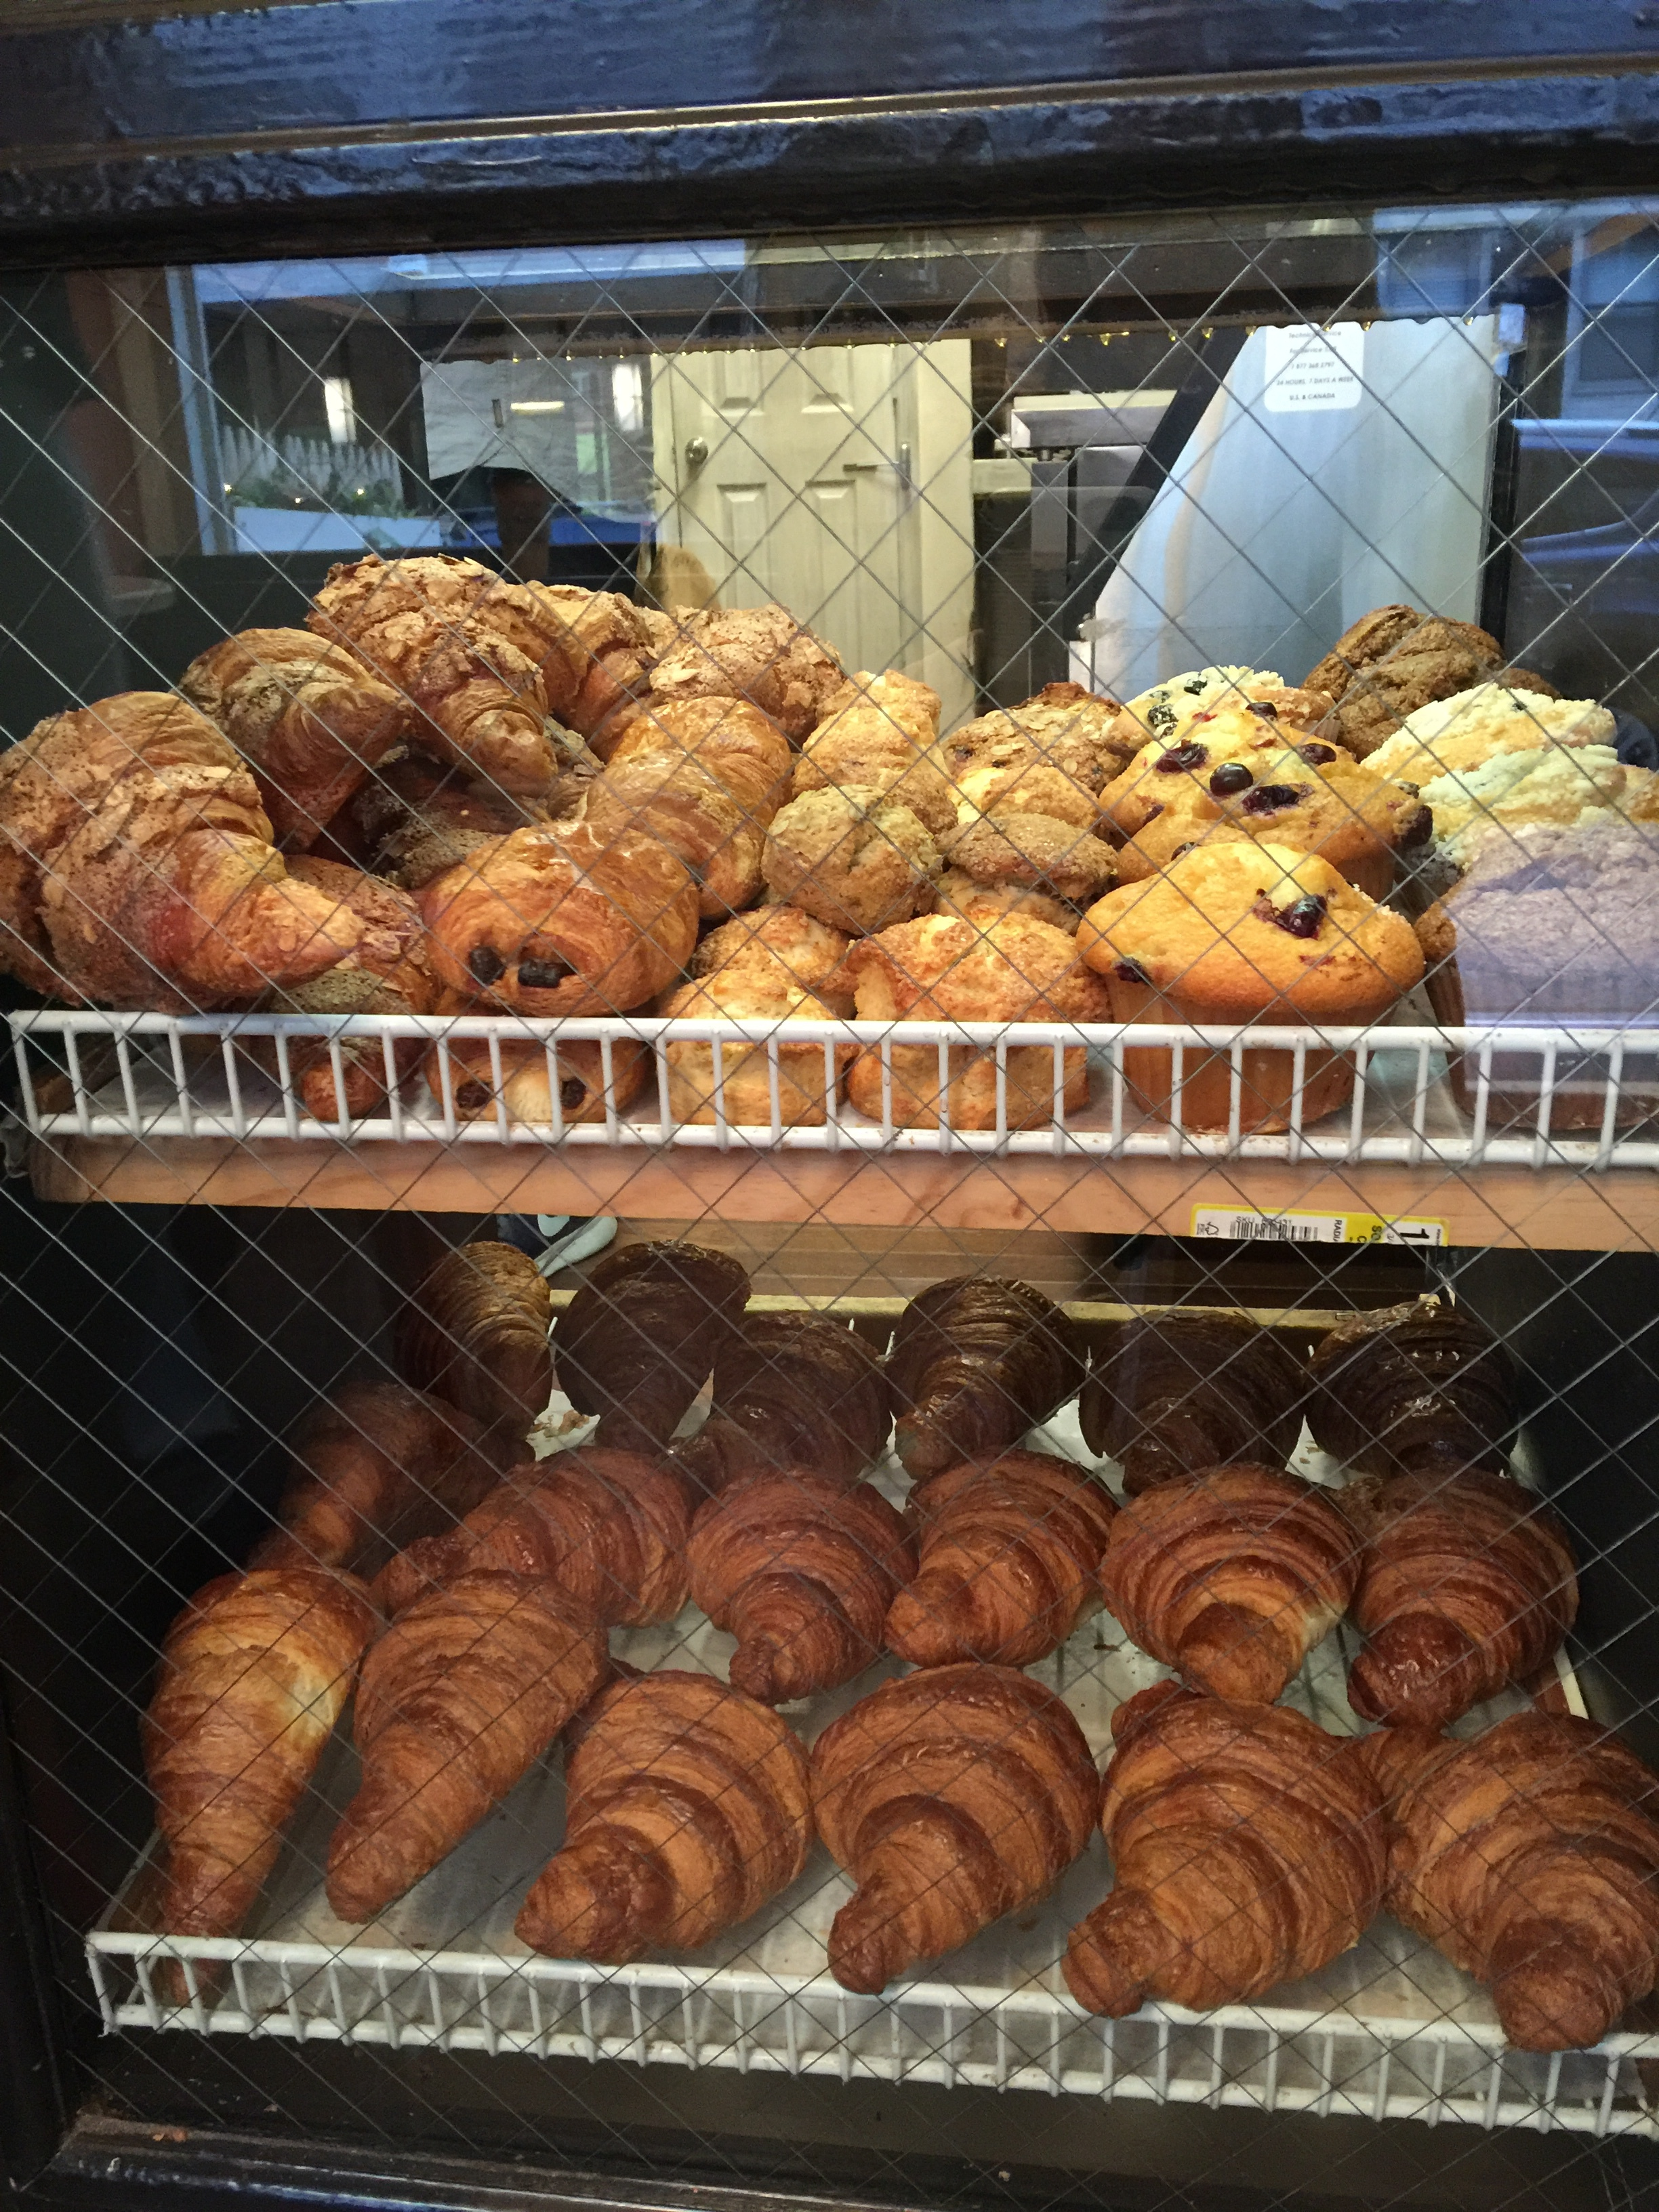 04-25-16 Yorkafe Pastries.JPG